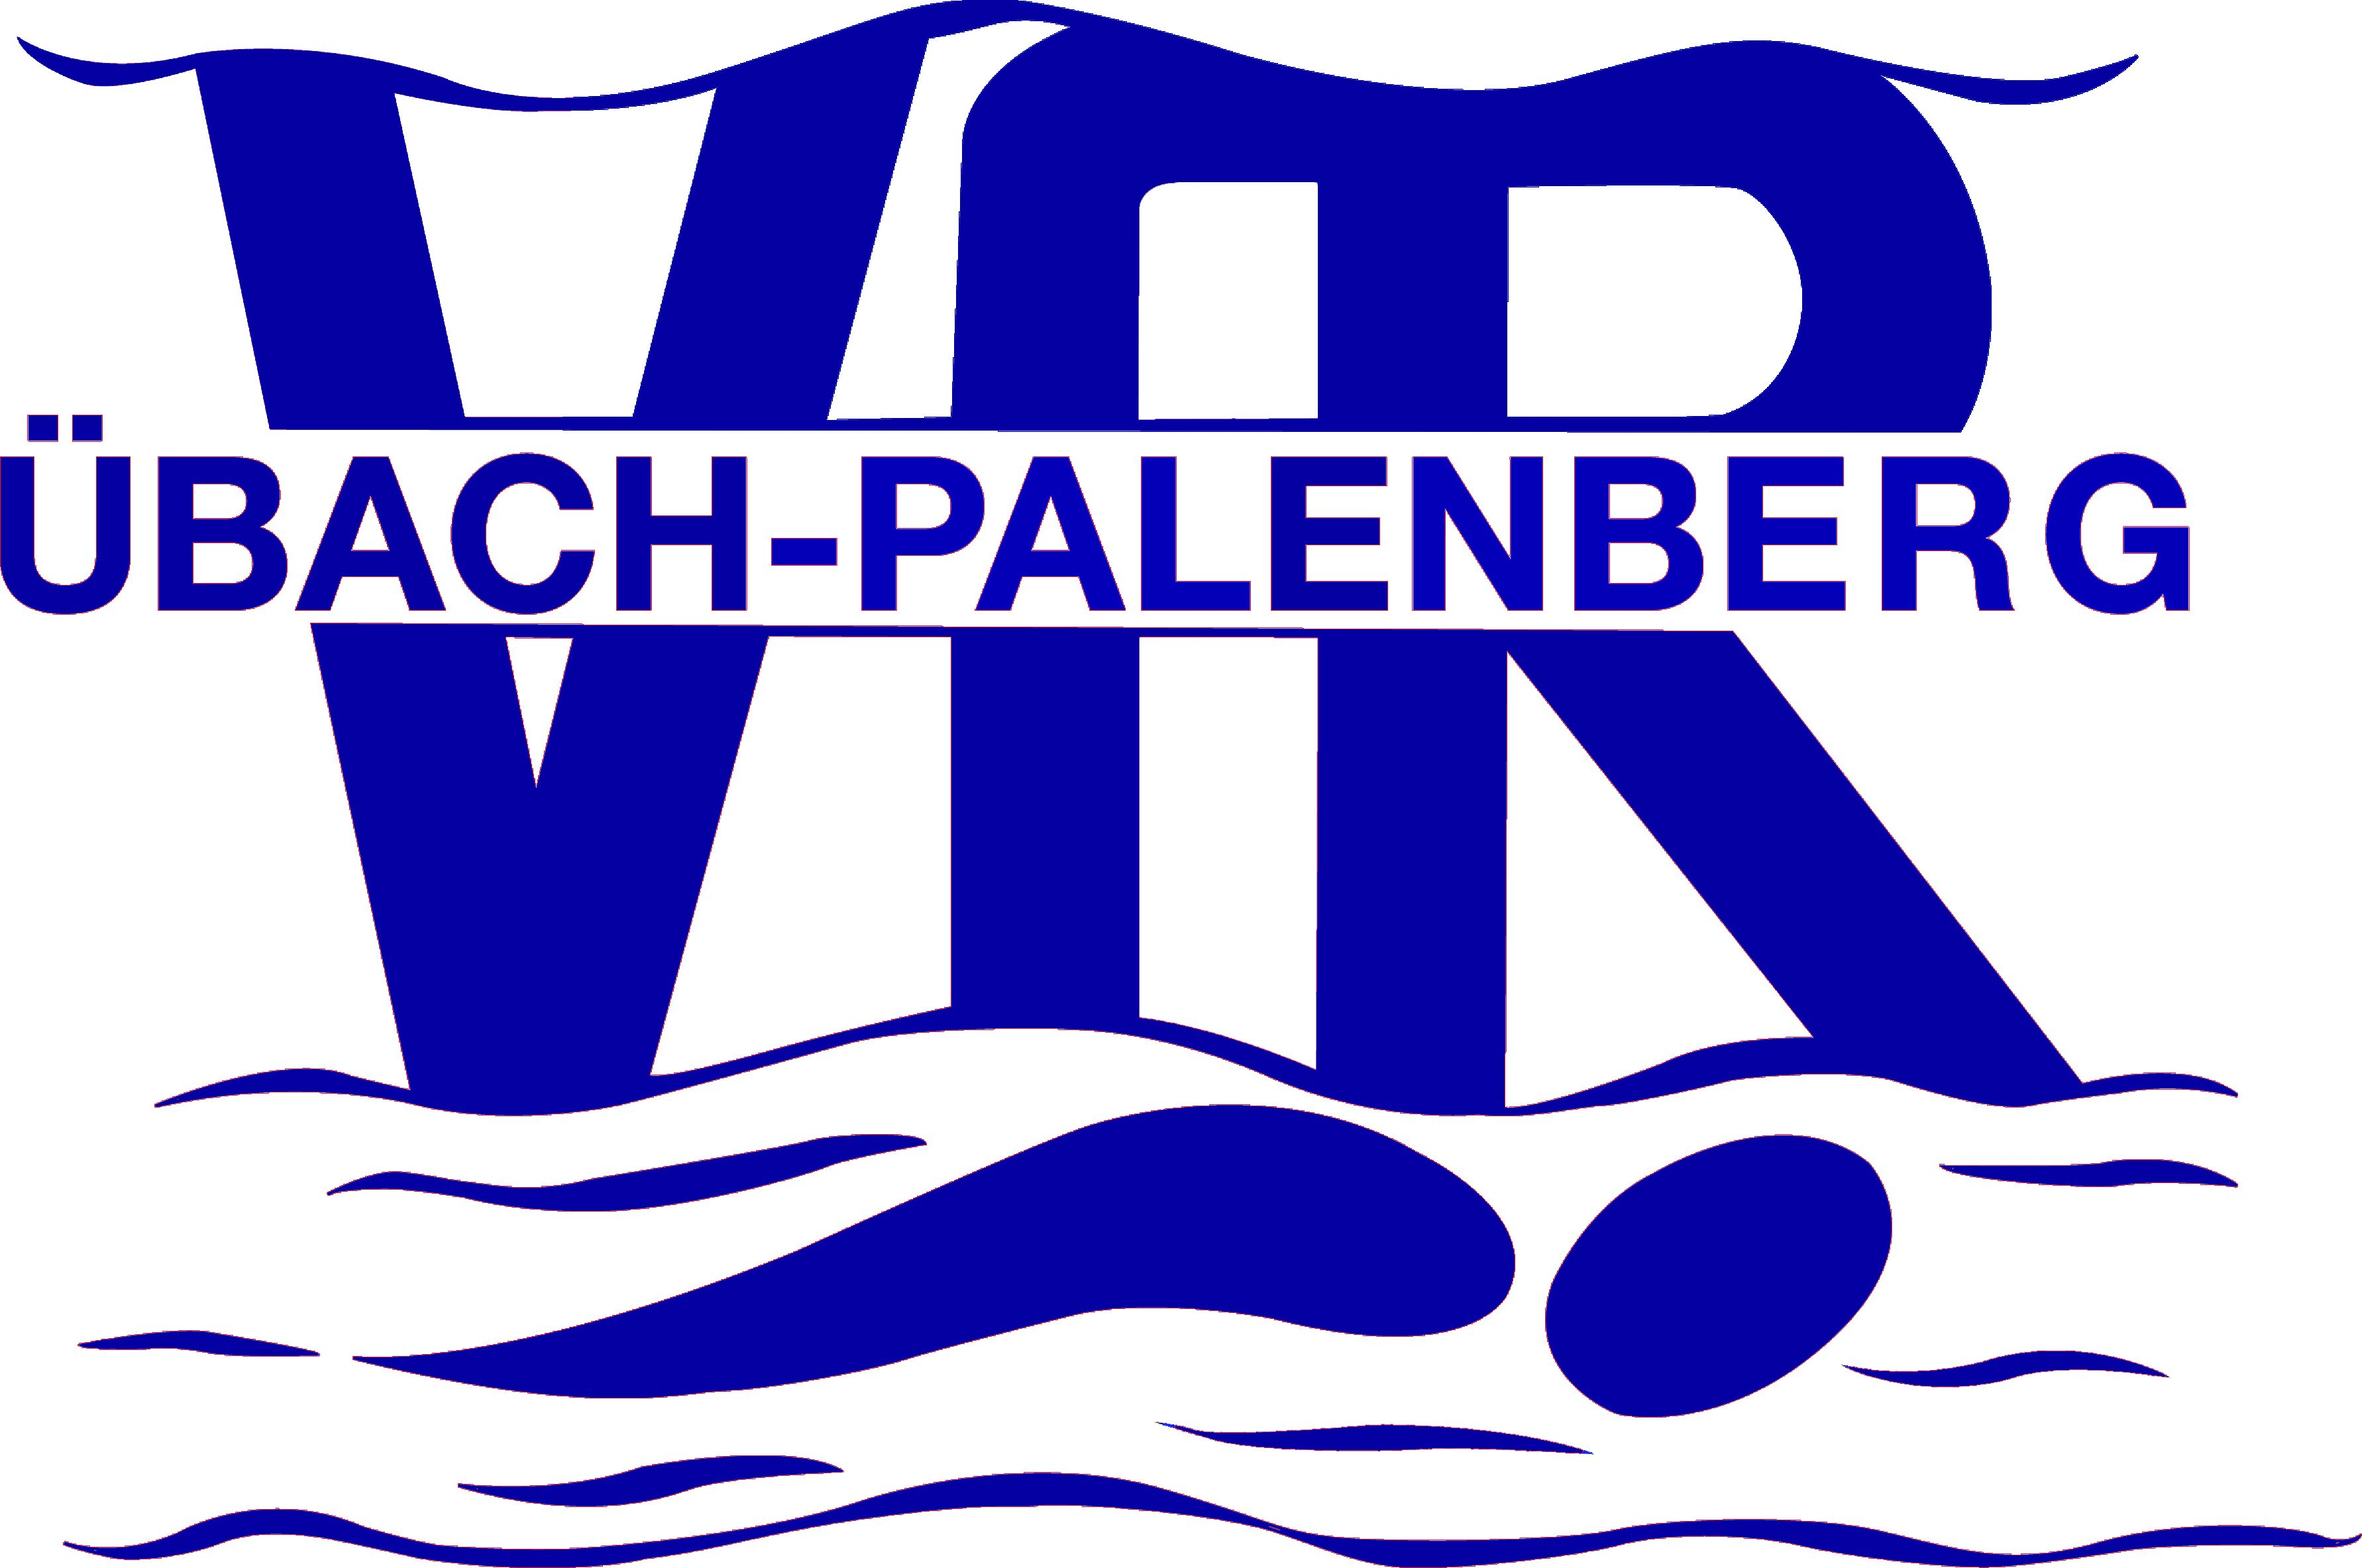 VfR Übach-Palenberg